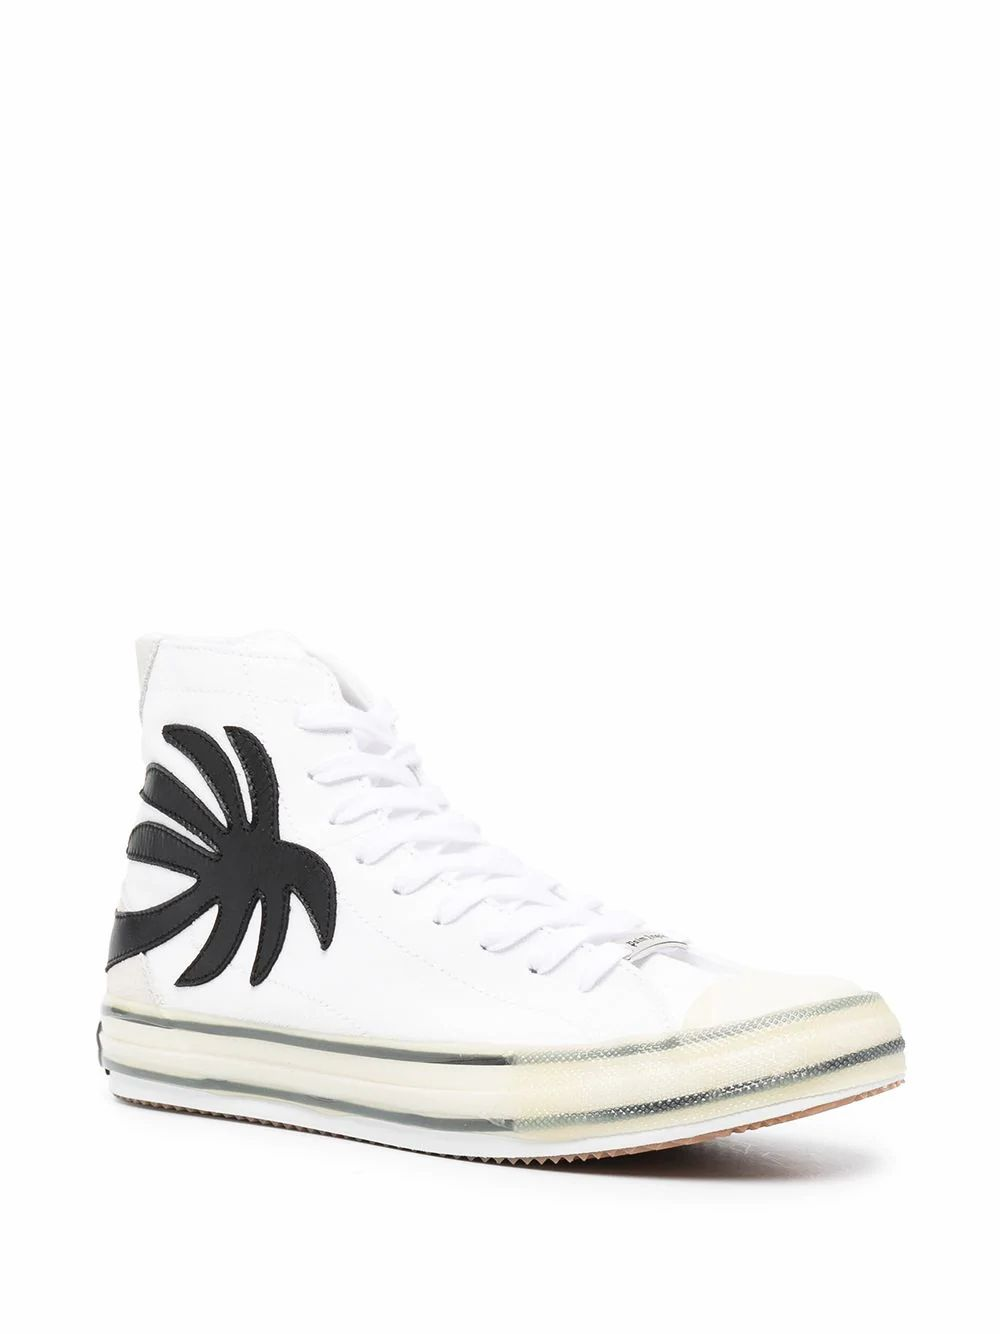 PALM ANGELS Leathers PALM ANGELS MEN'S WHITE COTTON HI TOP SNEAKERS